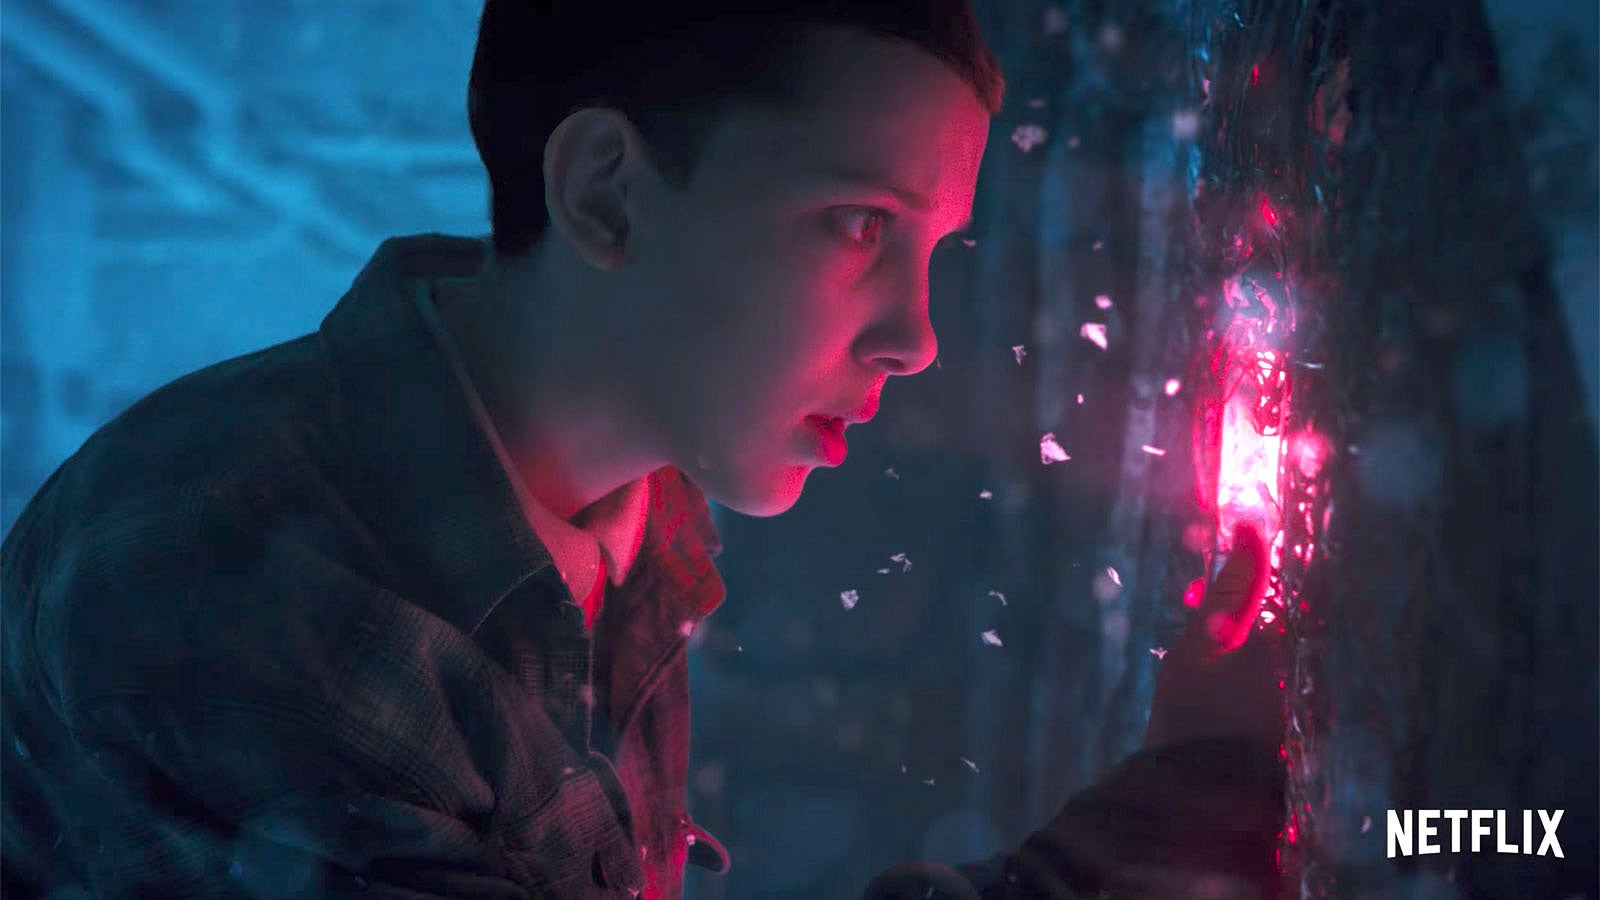 Stranger Things Had To Hide The Monsters To Get The Rights To 'Should I Stay Or Should I Go'